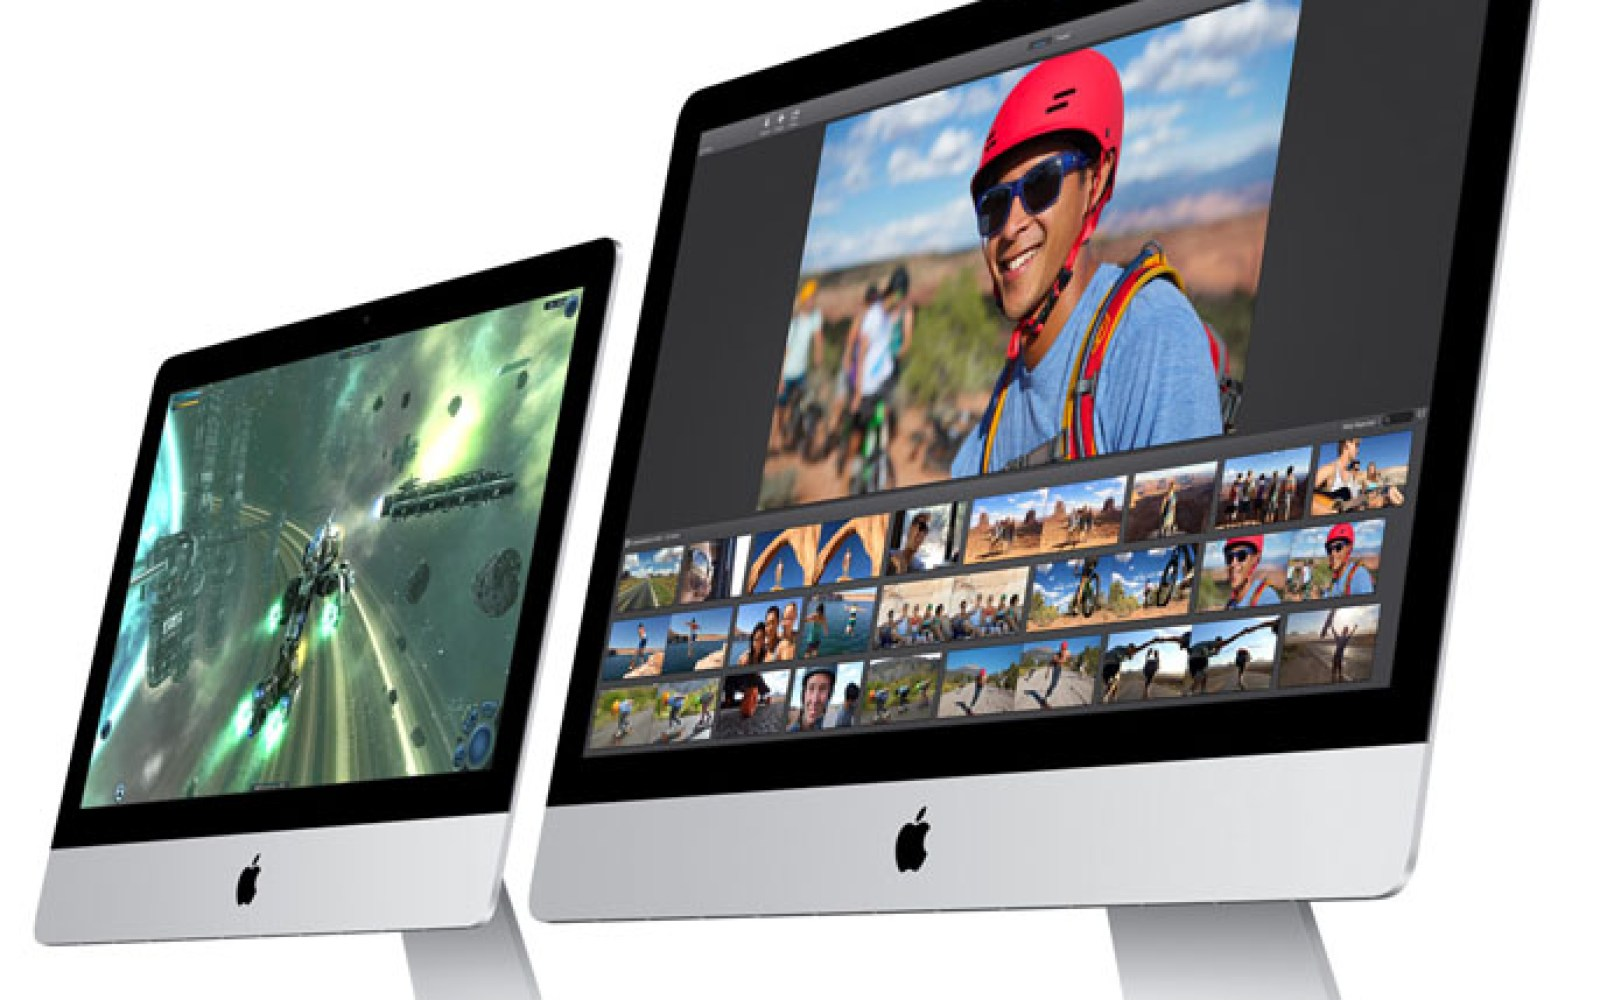 PSA: You can still upgrade the RAM in the Retina iMac, save hundreds over Apple's price